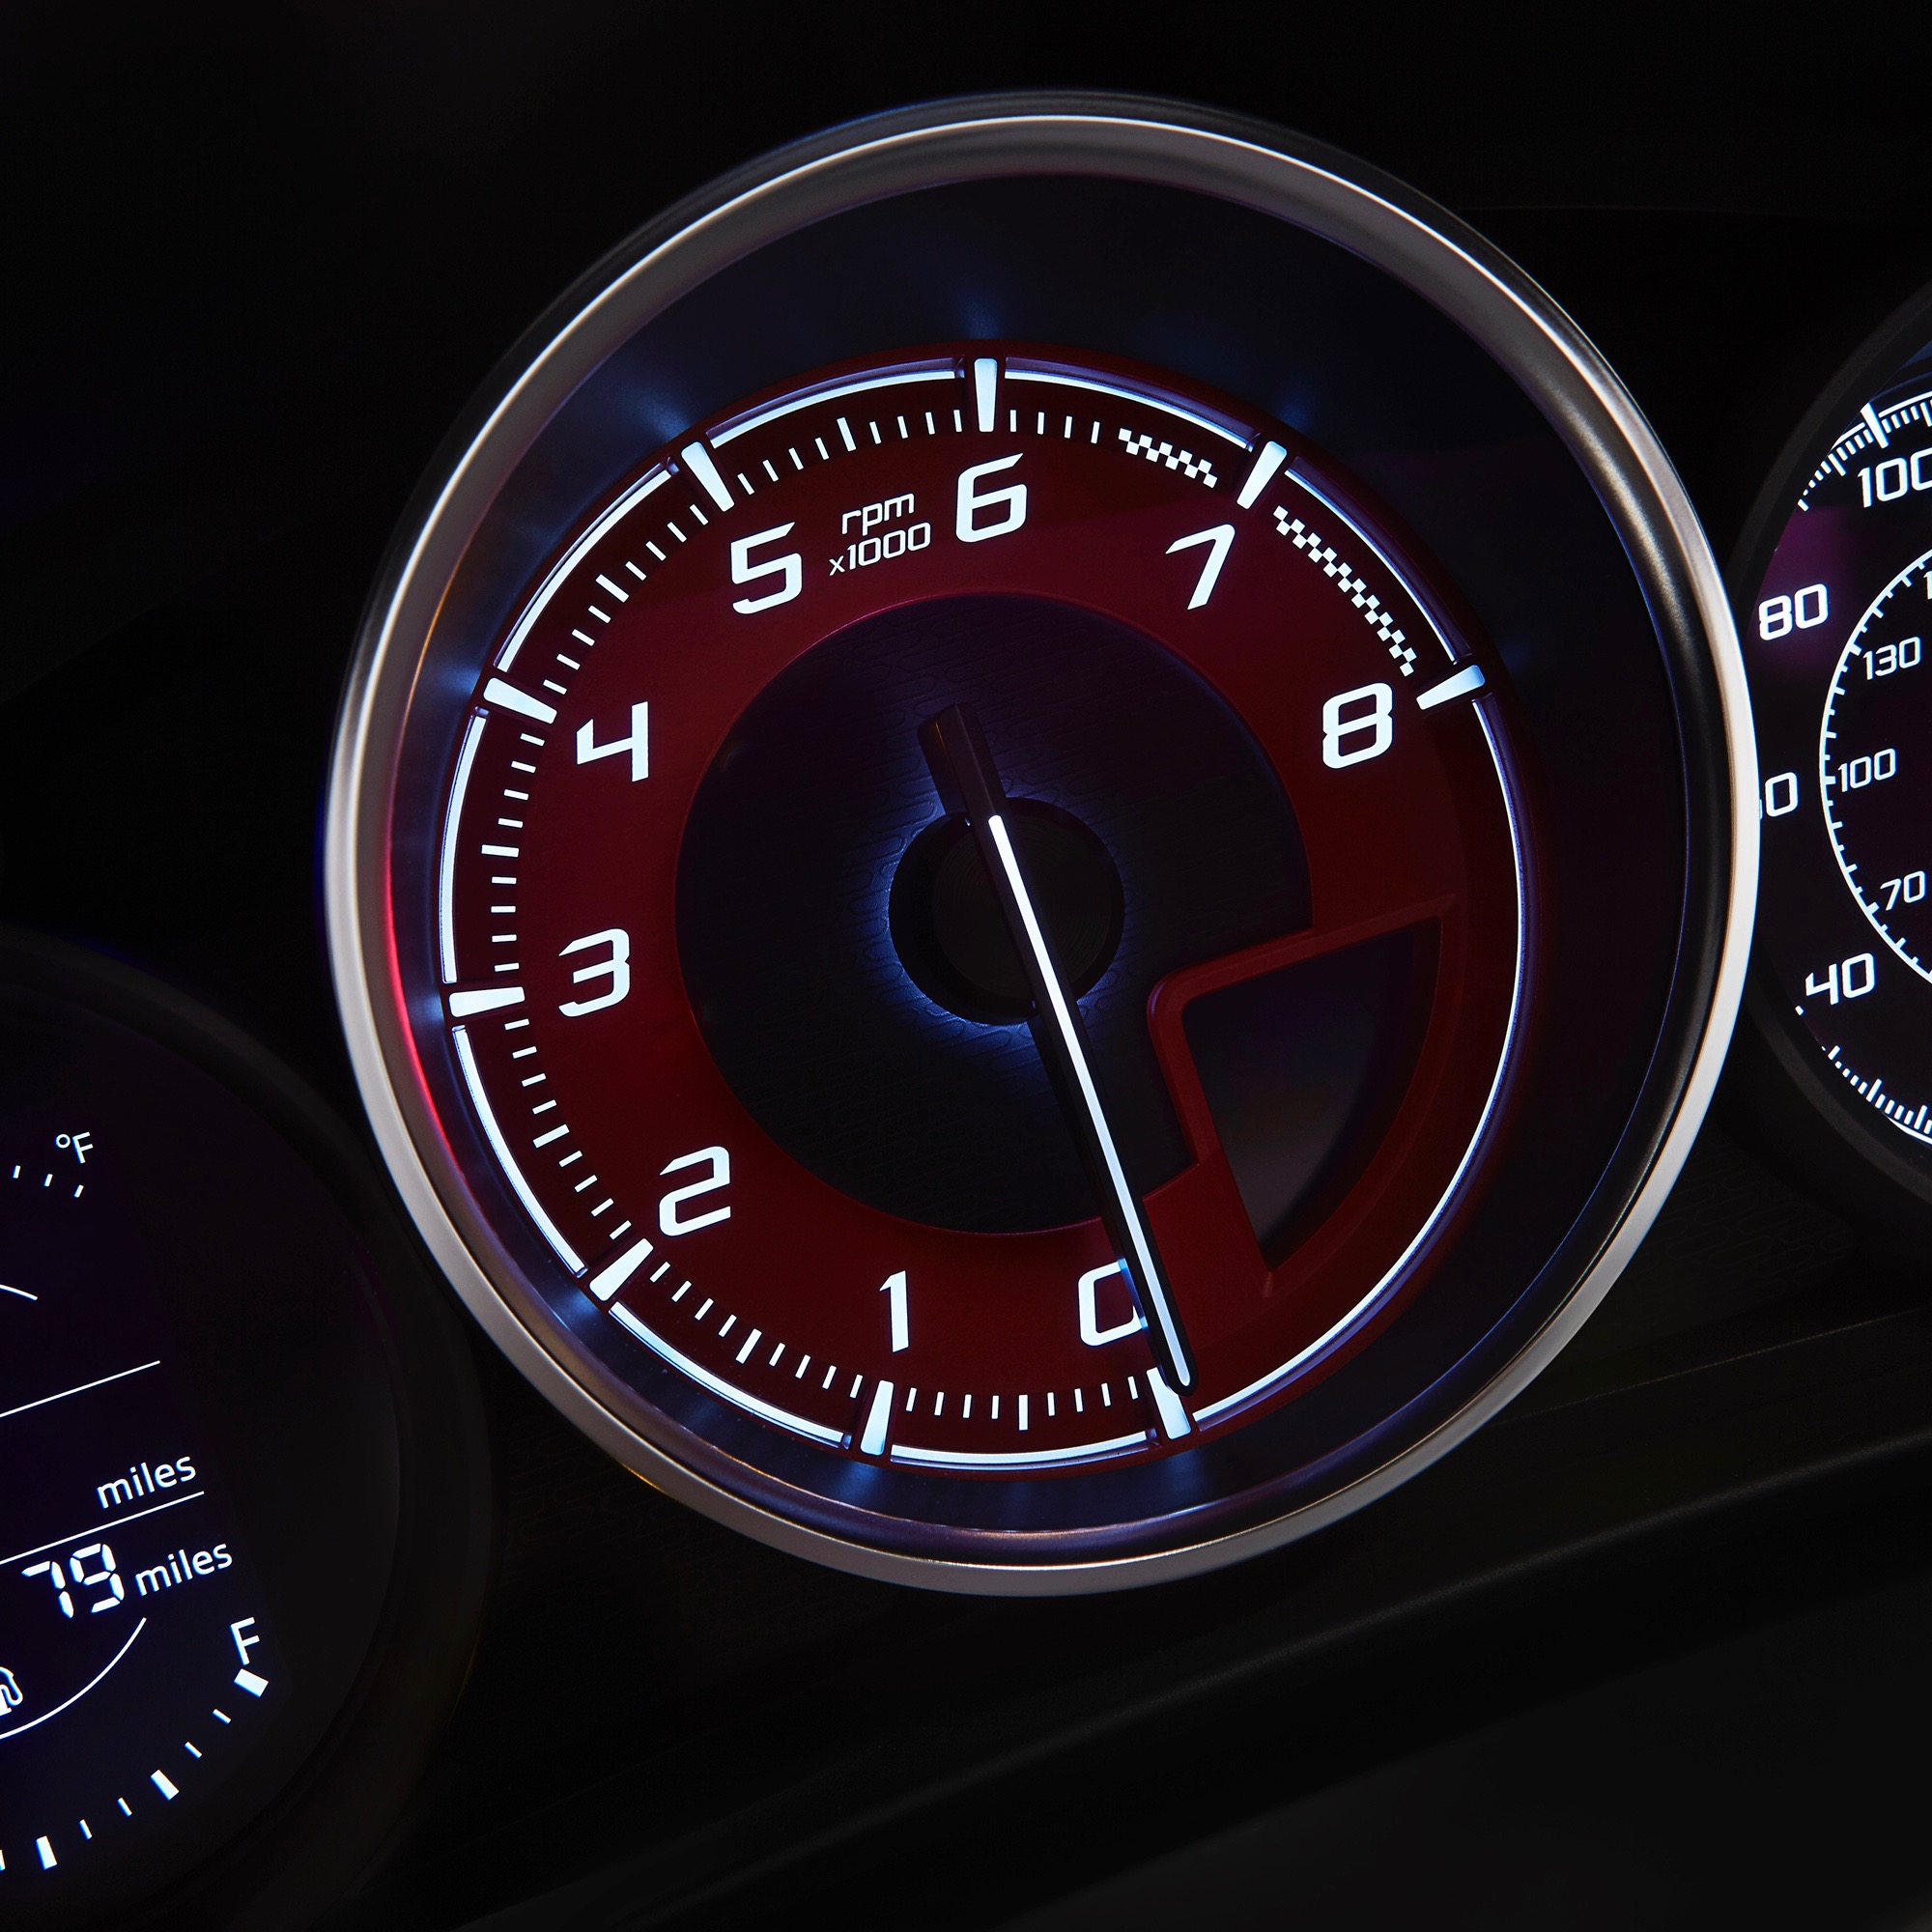 Fiat 500 Abarth Performance Figures Review Abarth M G